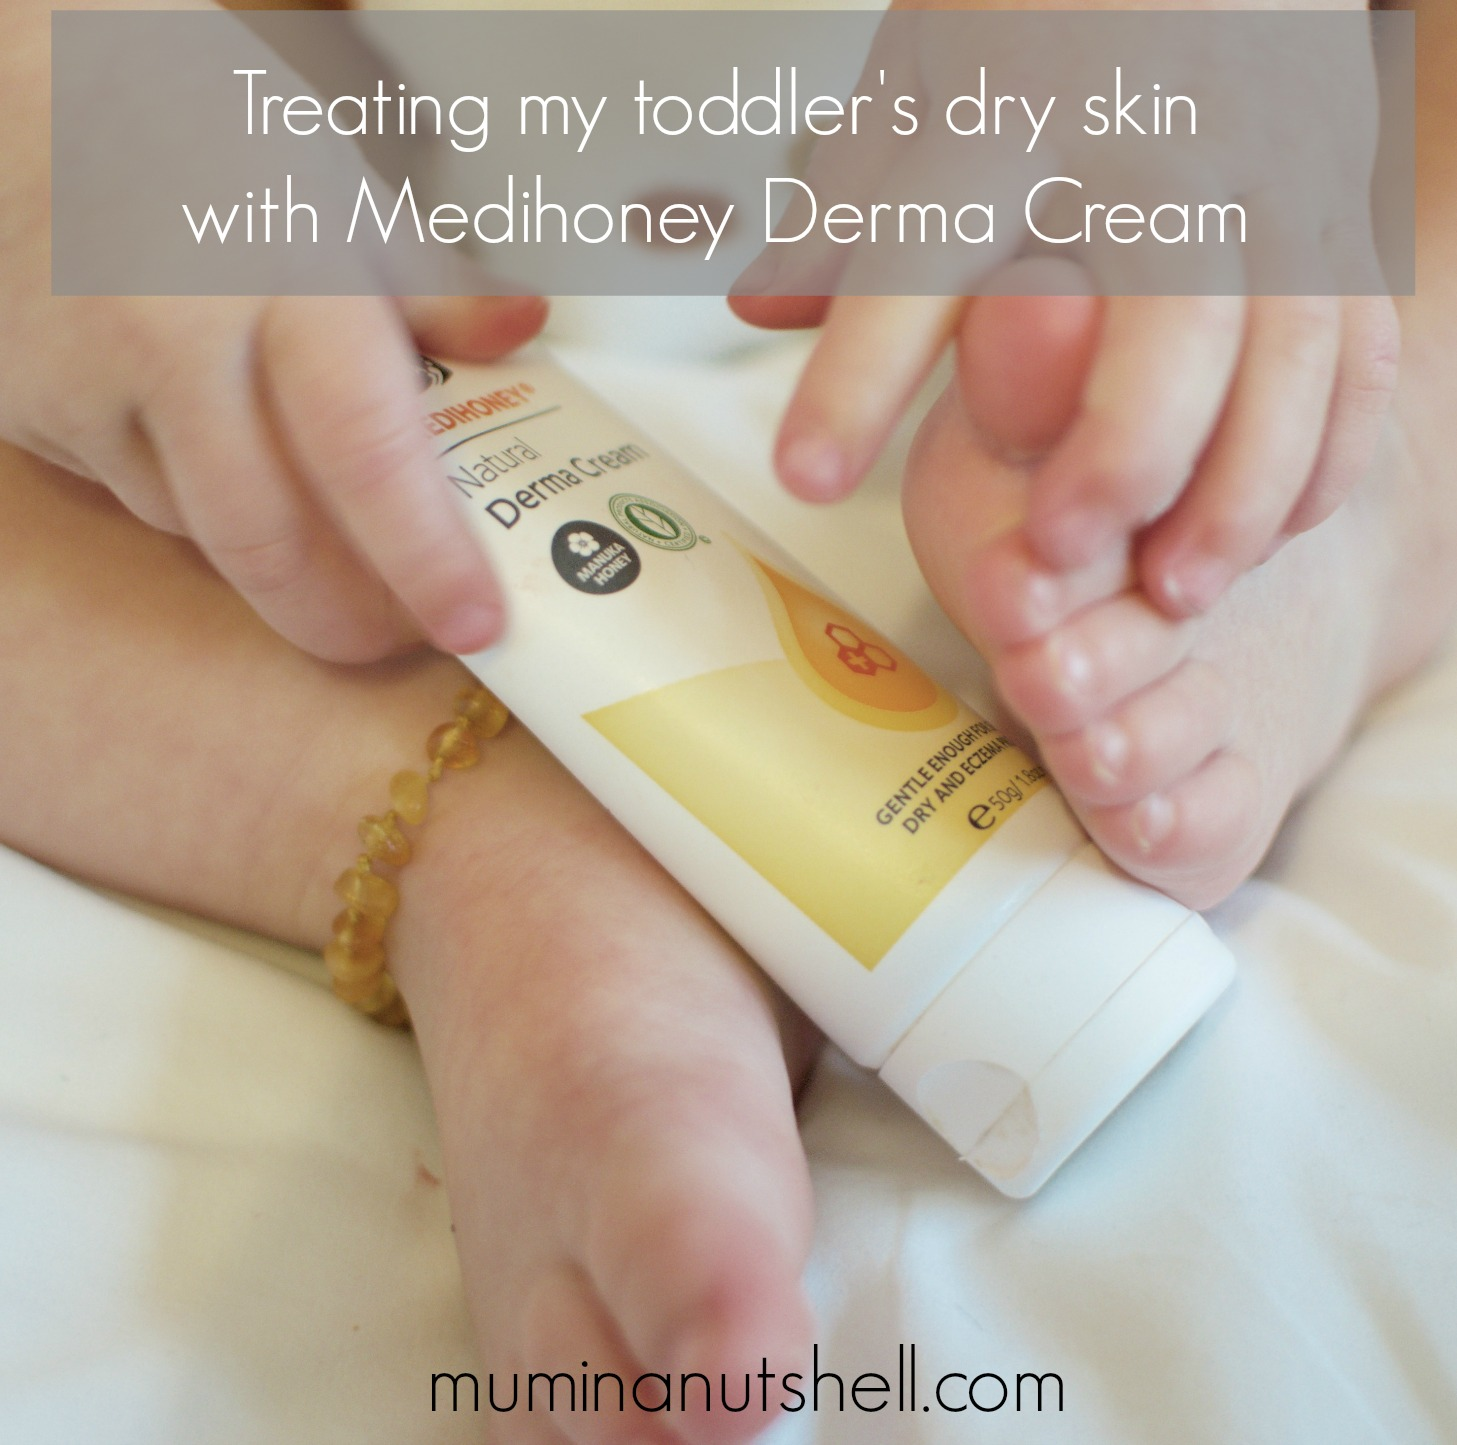 treating my toddler's dry patches with medihoney